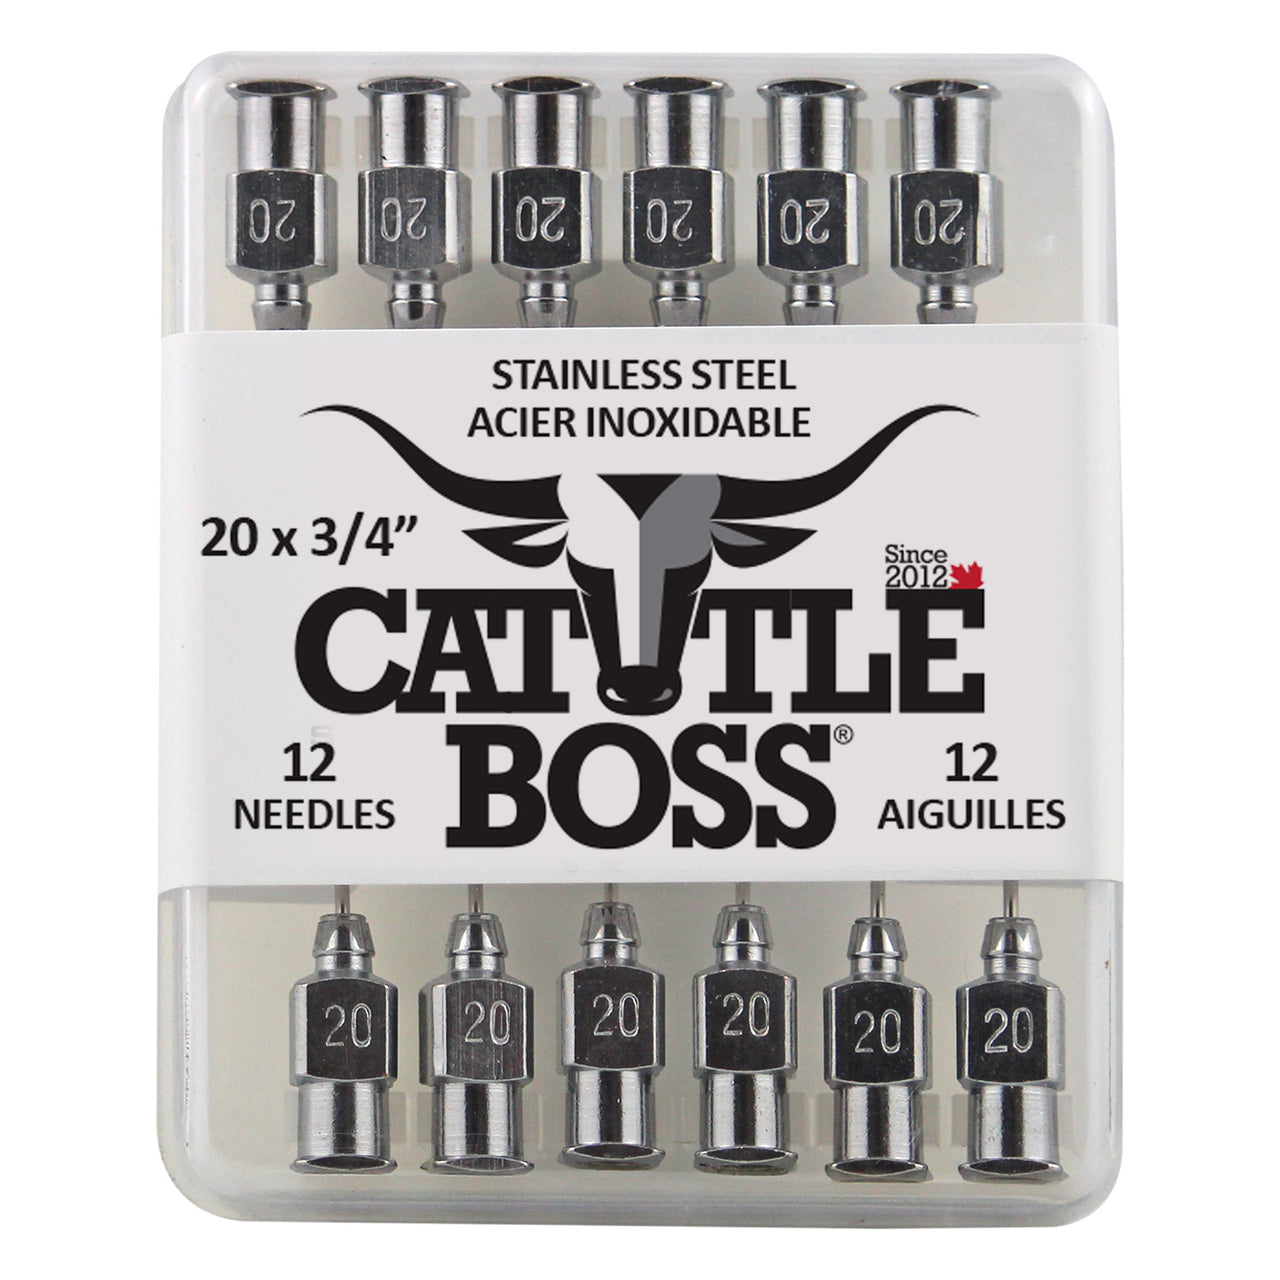 Cattle Boss Stainless Steel Hub Needle (12 Pack) 20X3/4 - Drug Administration Cattle Boss - Canada